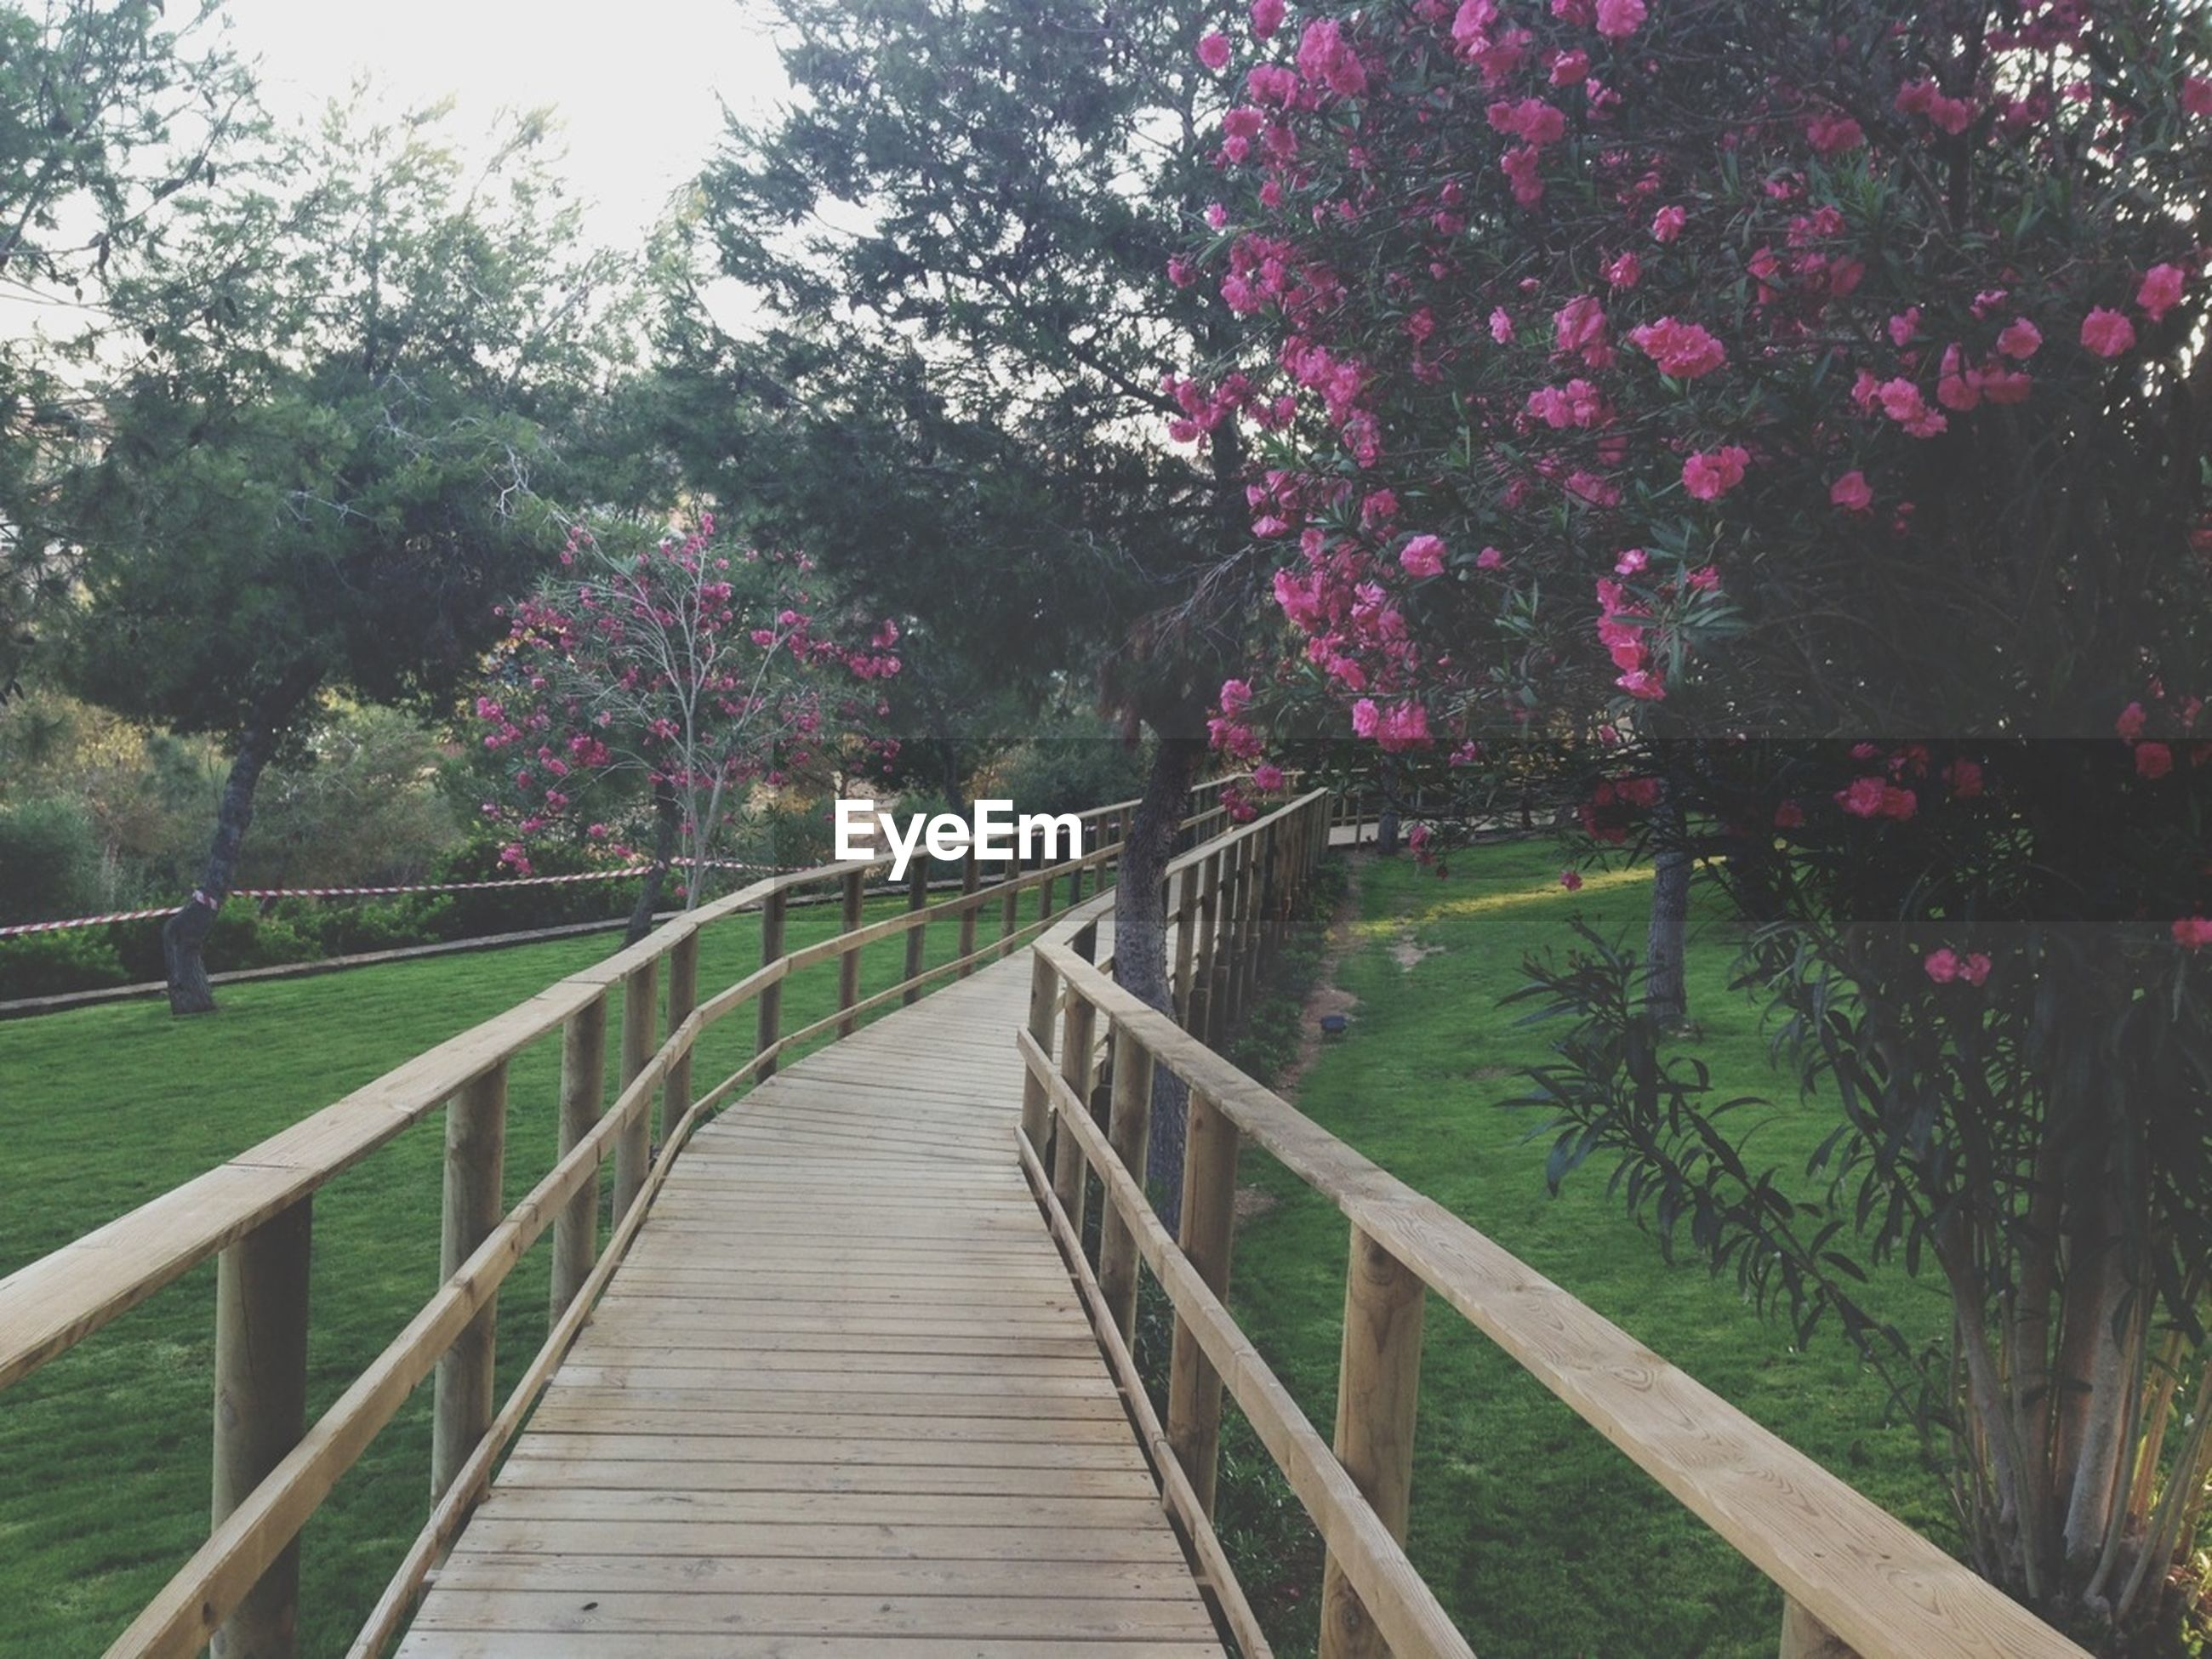 tree, railing, the way forward, growth, footbridge, flower, nature, beauty in nature, tranquility, wood - material, boardwalk, tranquil scene, park - man made space, branch, plant, walkway, day, scenics, outdoors, freshness